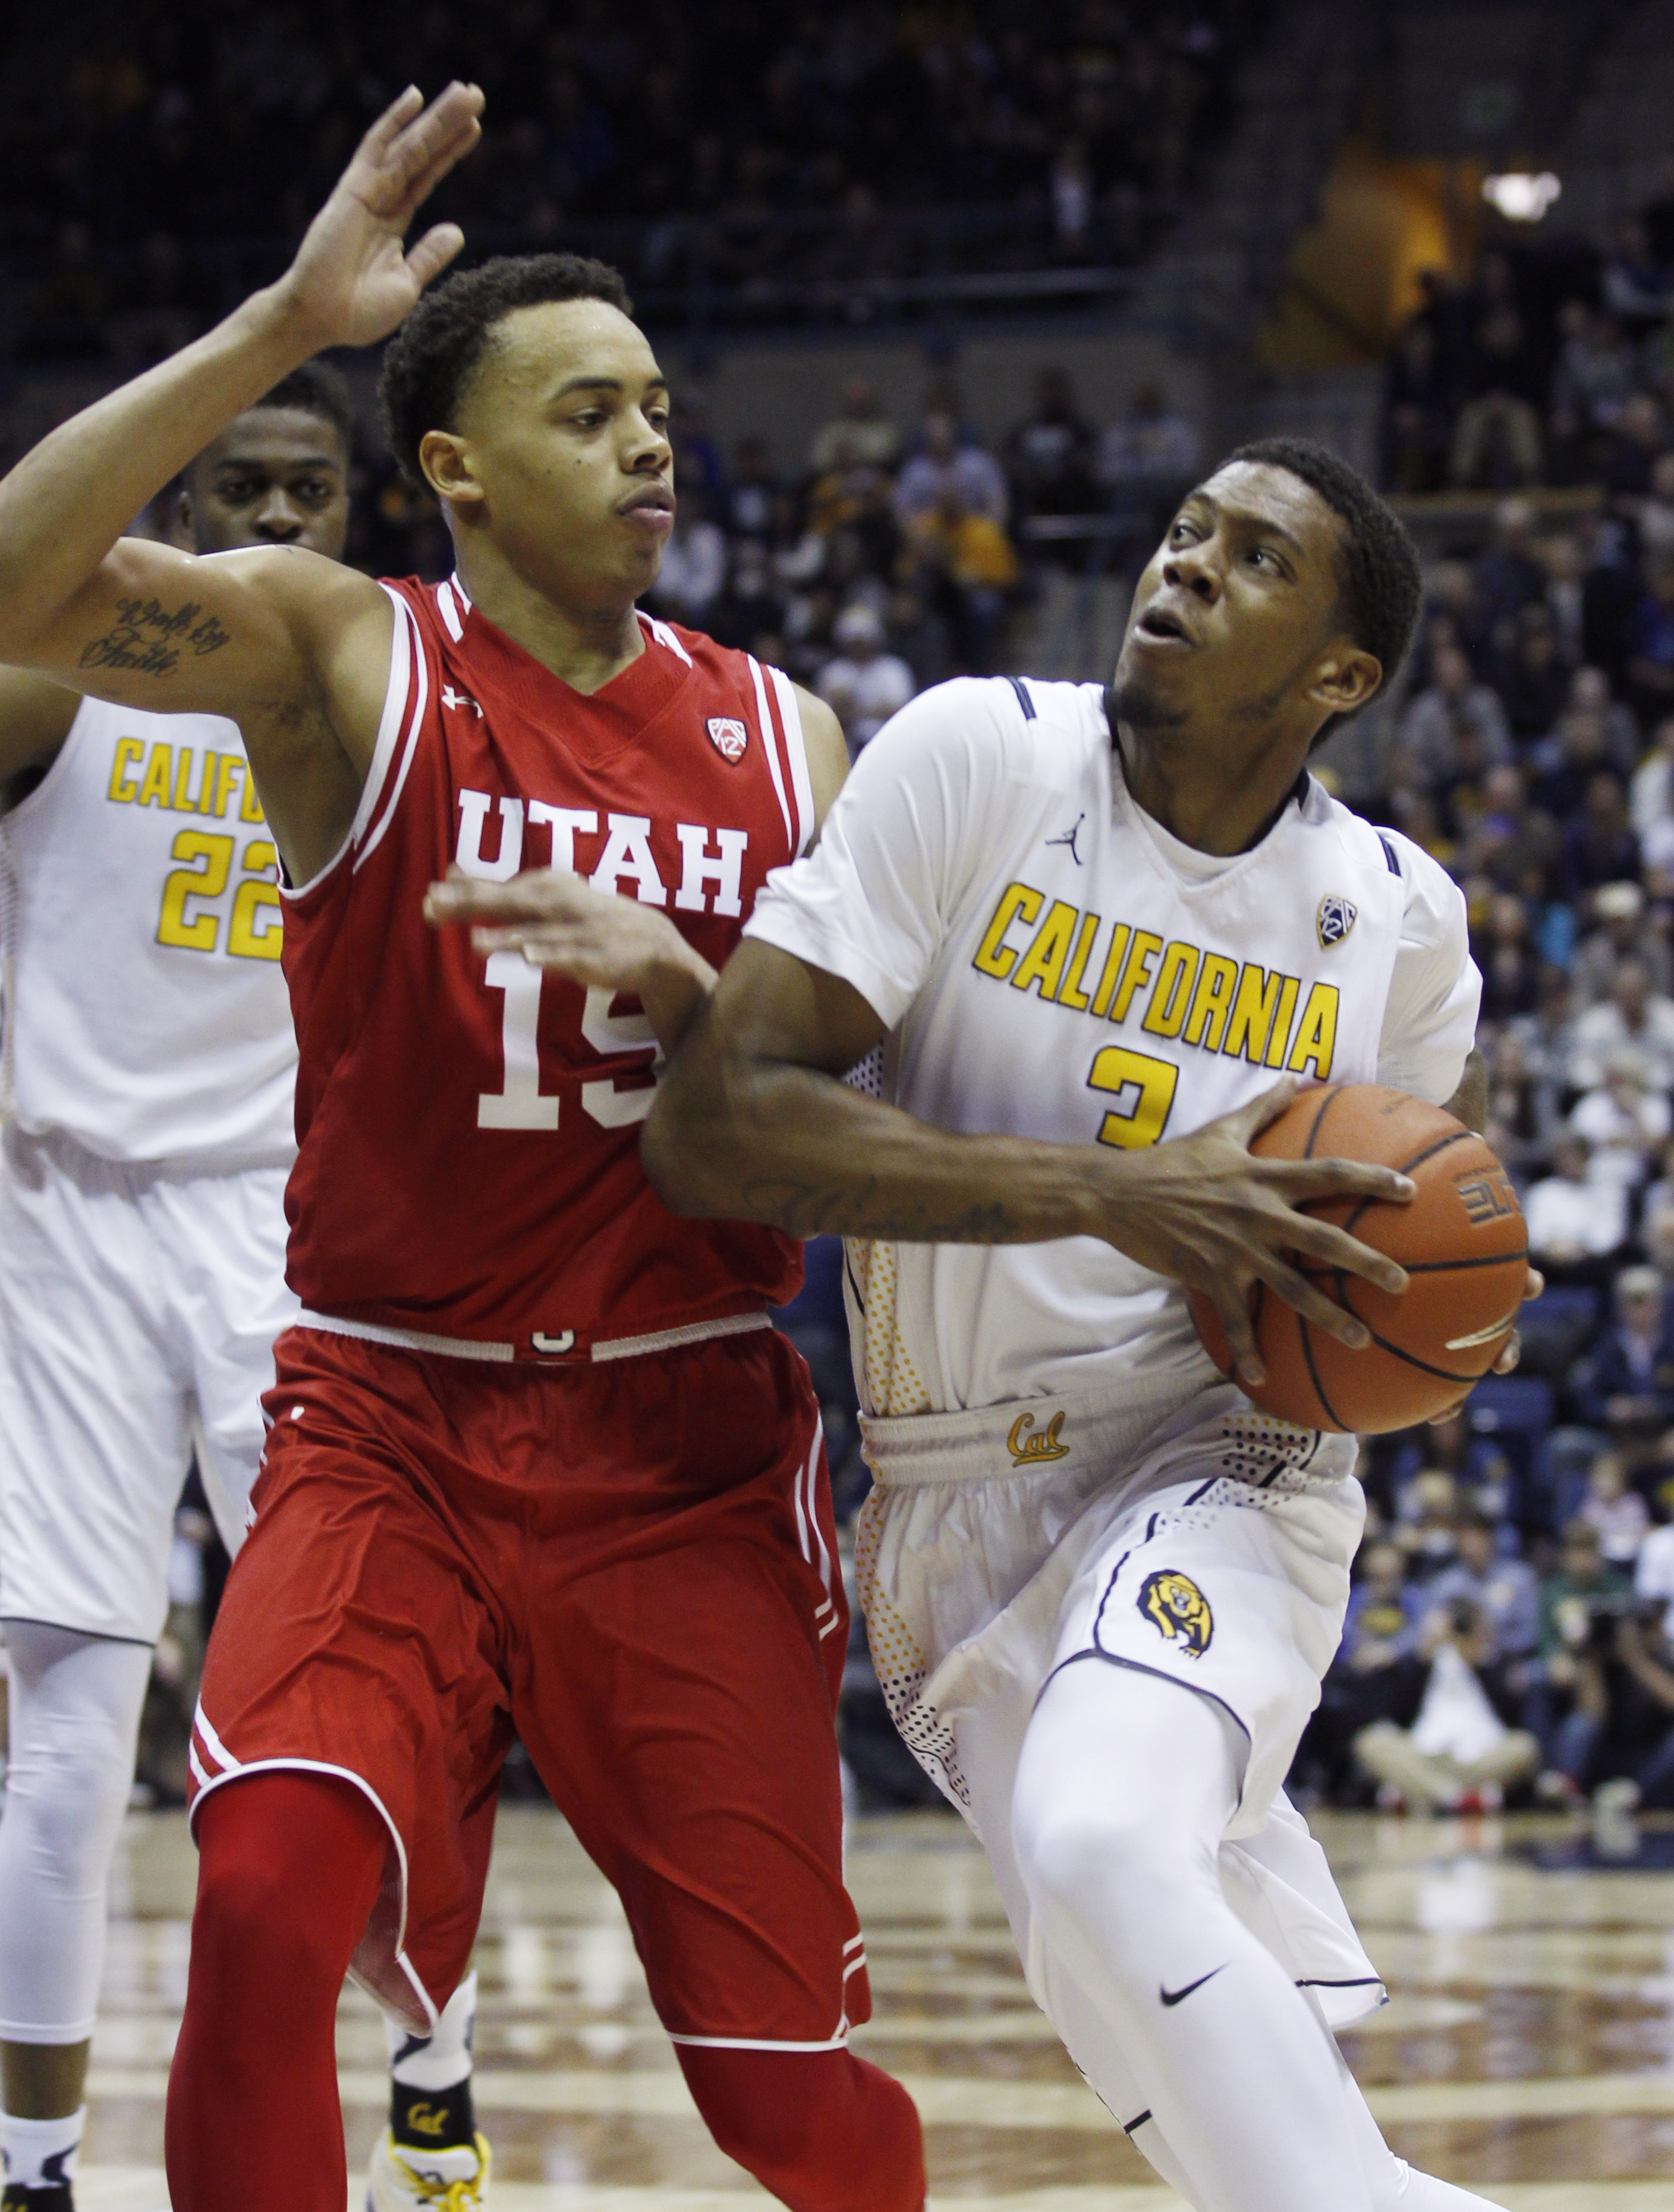 California Golden Bears' Tyrone Wallace, right, drives for the basket as Utah Utes' Lorenzo Bonham defends during the first half of an NCAA basketball game, Sunday, Jan. 3, 2016, in Berkeley, Calif. (AP Photo/George Nikitin)